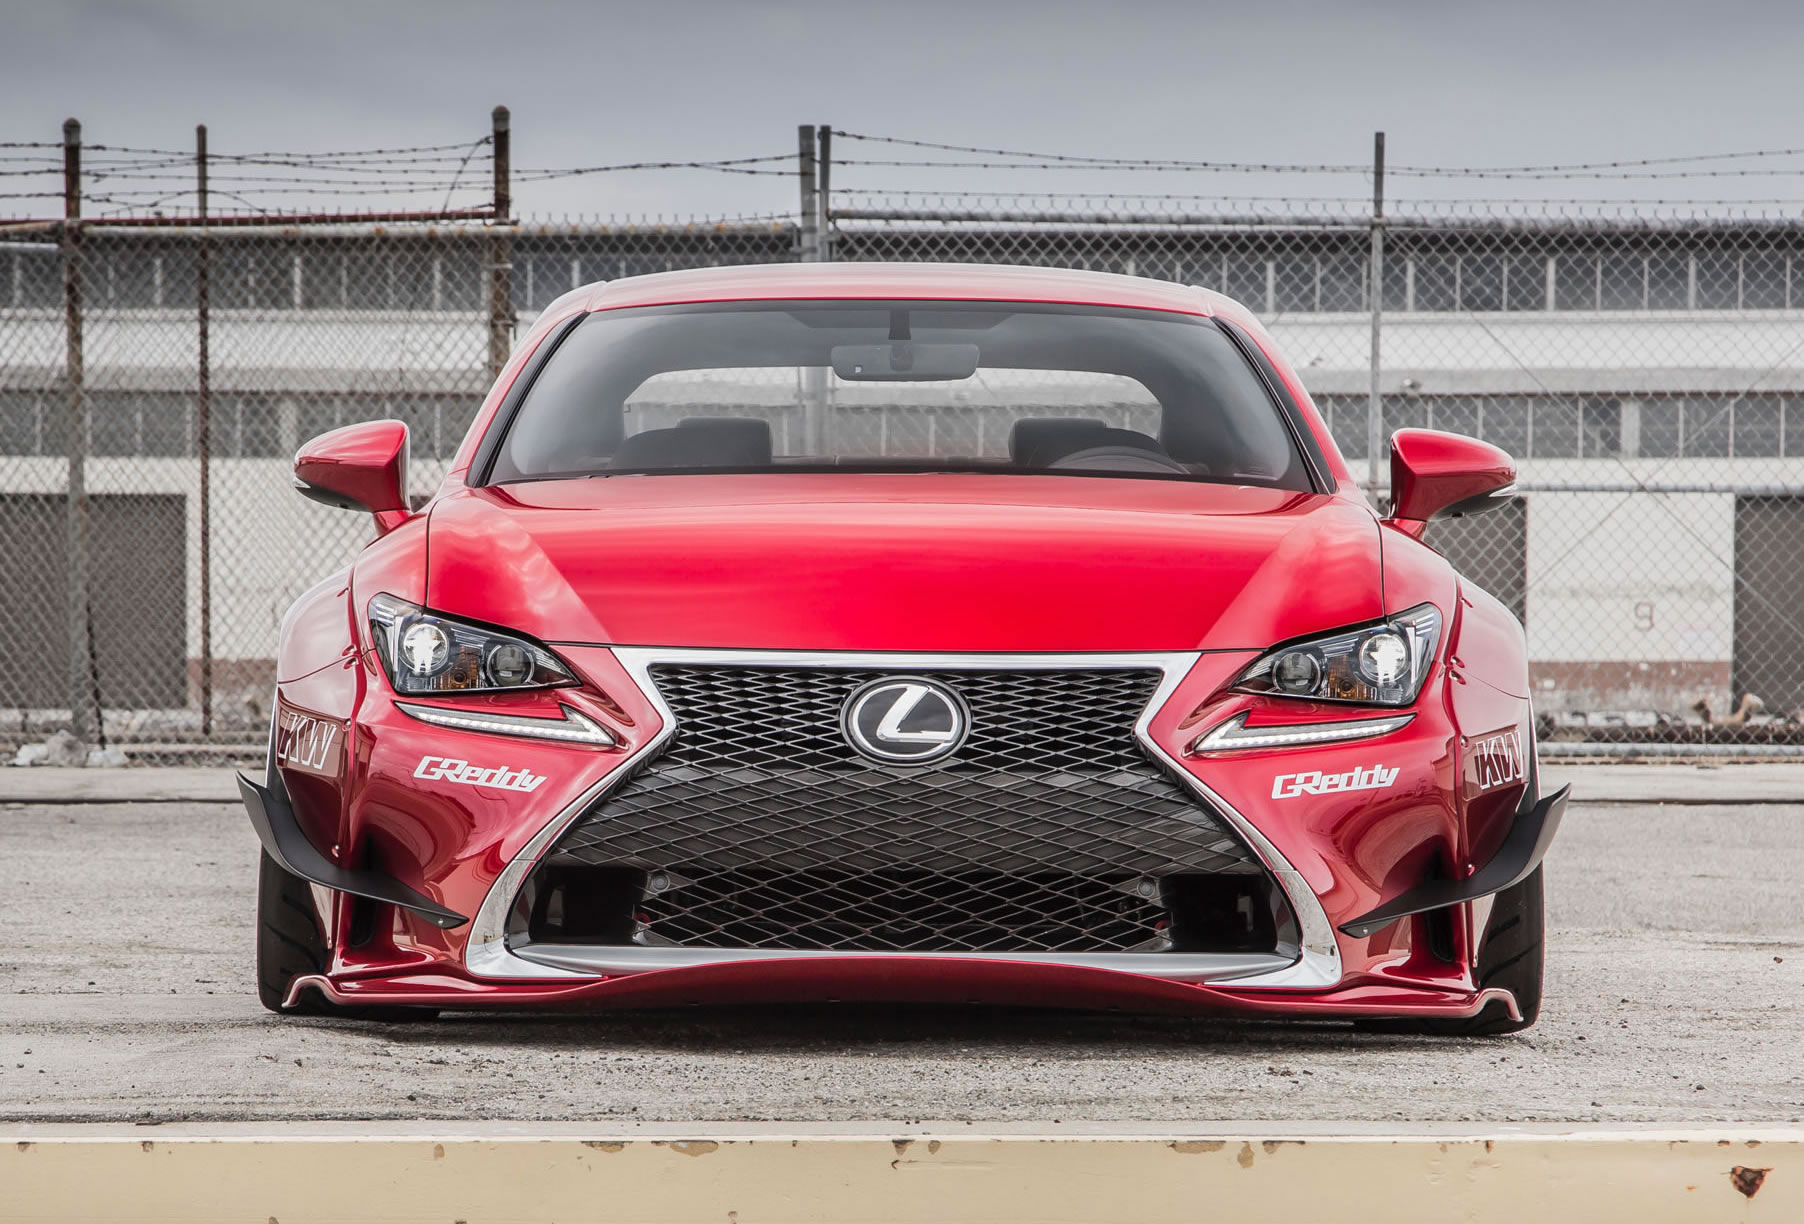 2015 Lexus Rc 350 F Sport By Gordon Ting Front Photo